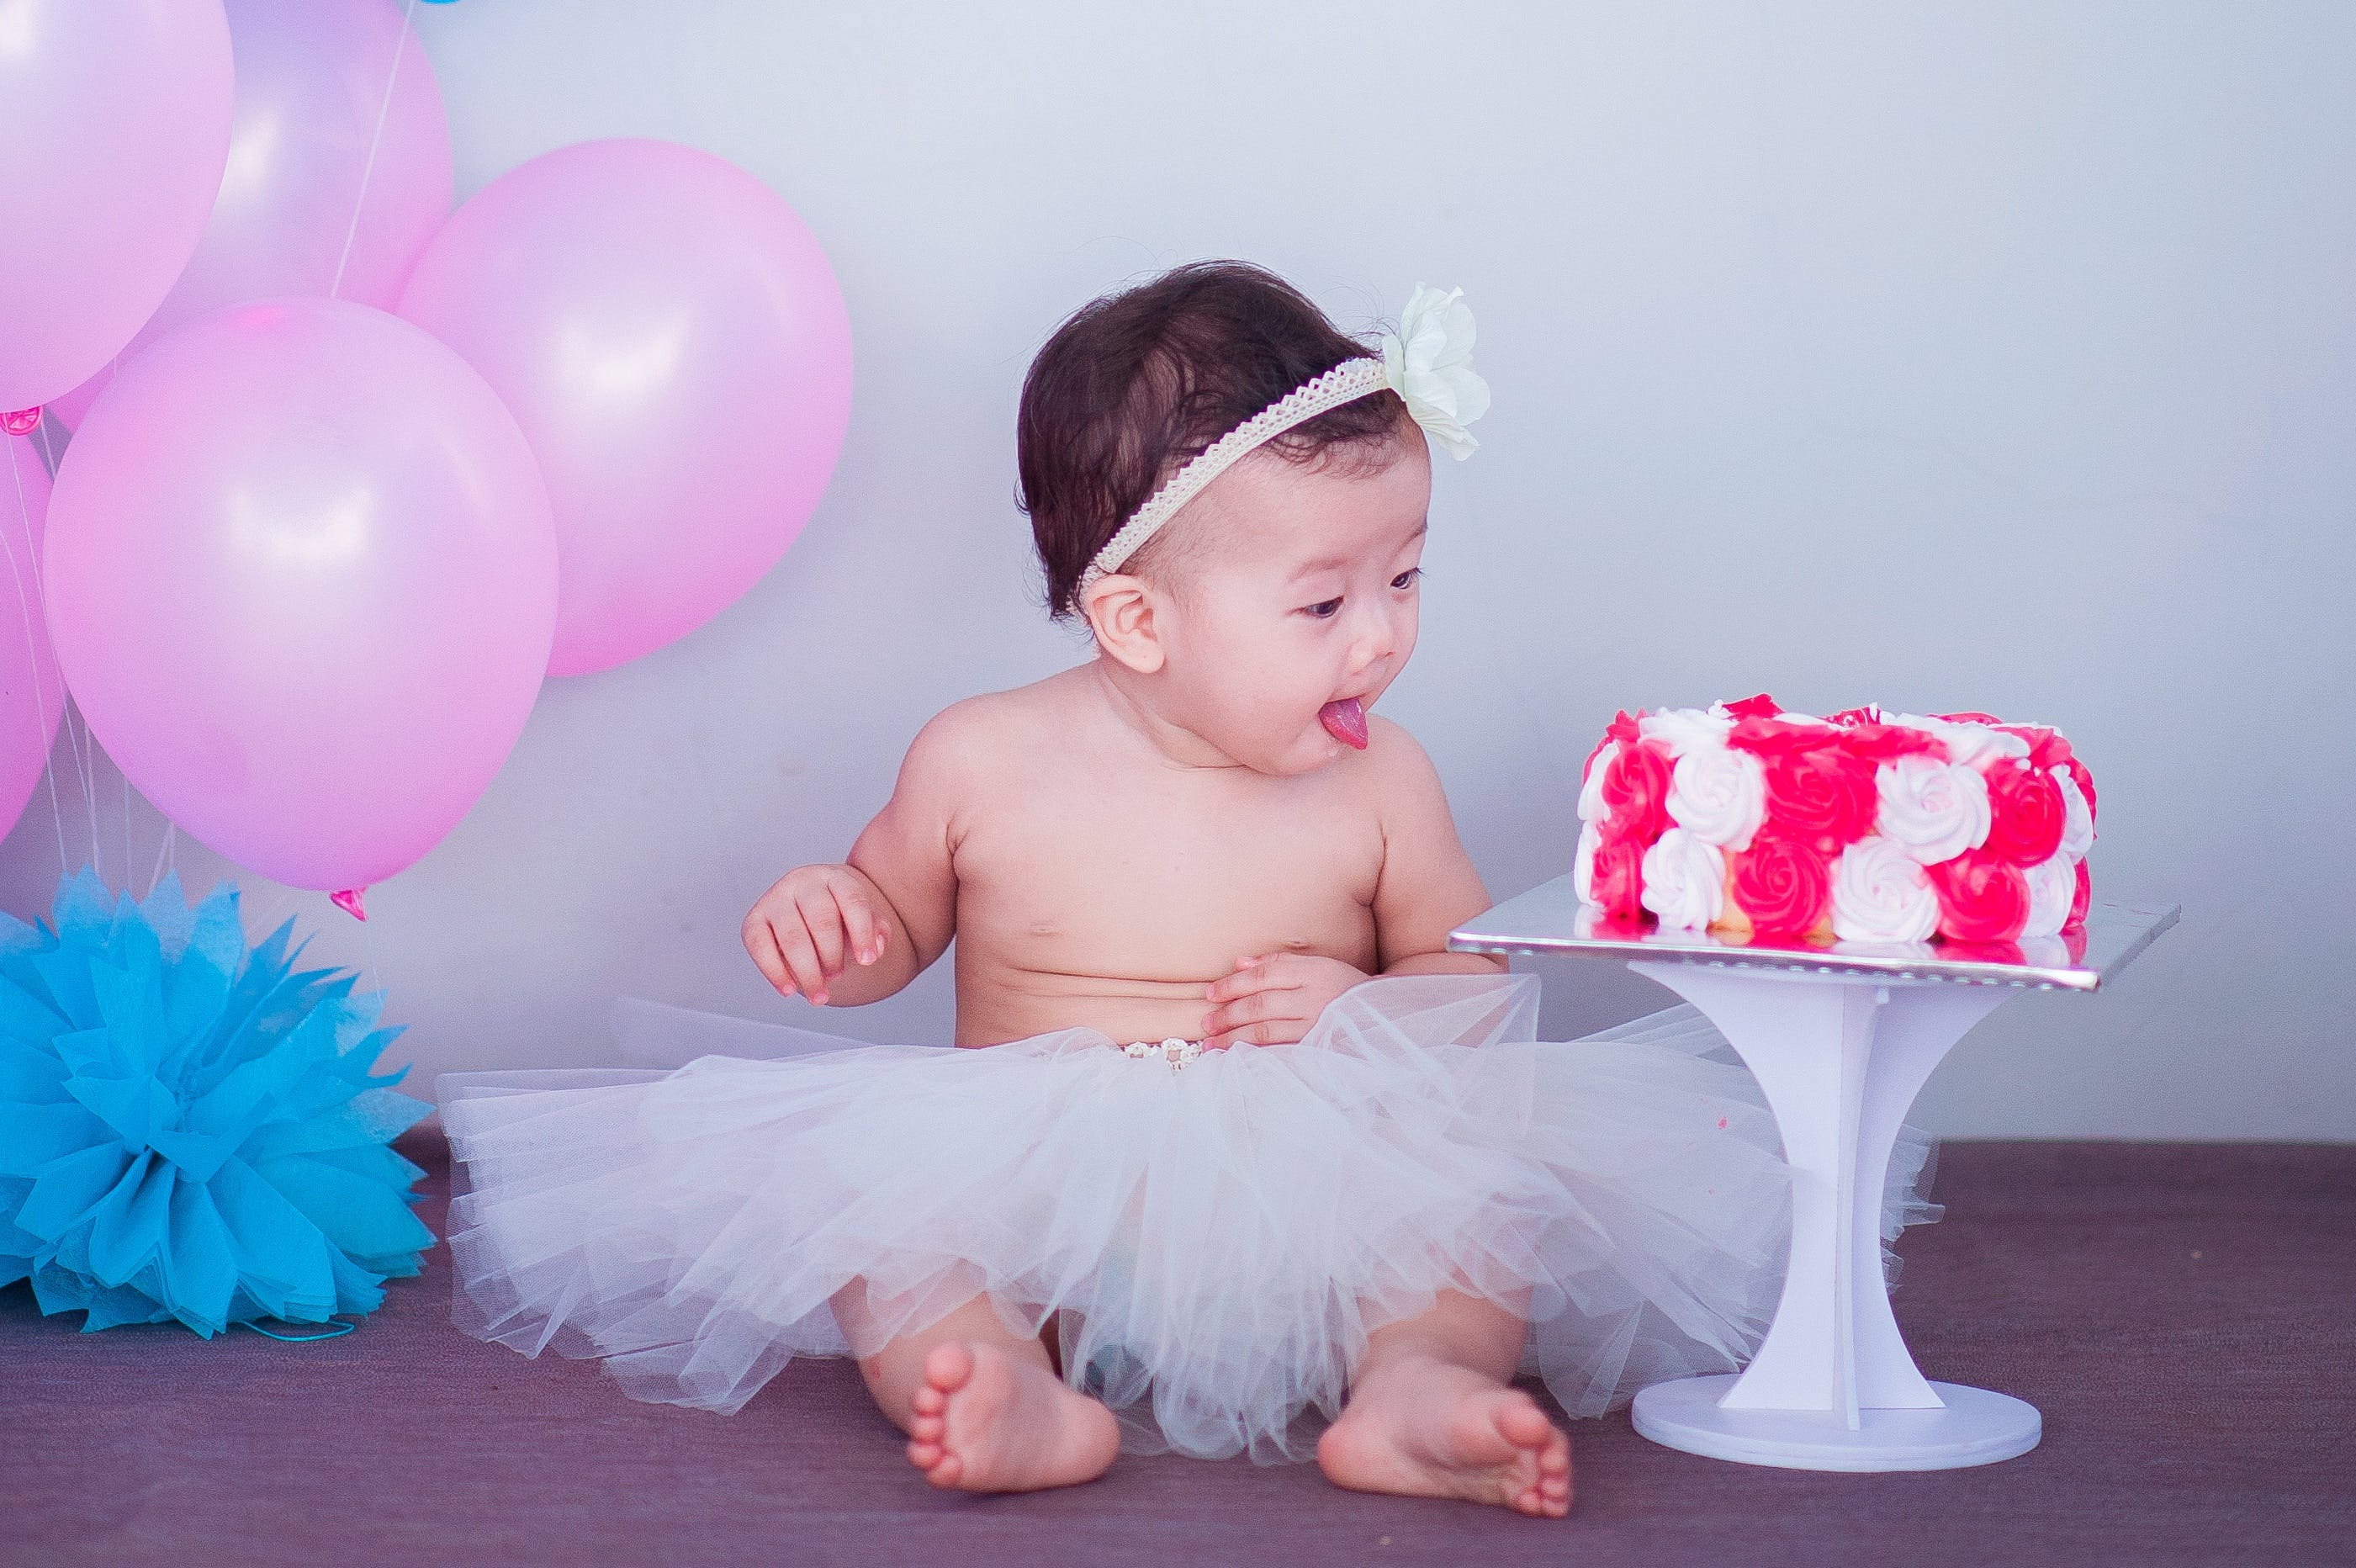 Baby in White Tutu Skirt Beside Cake